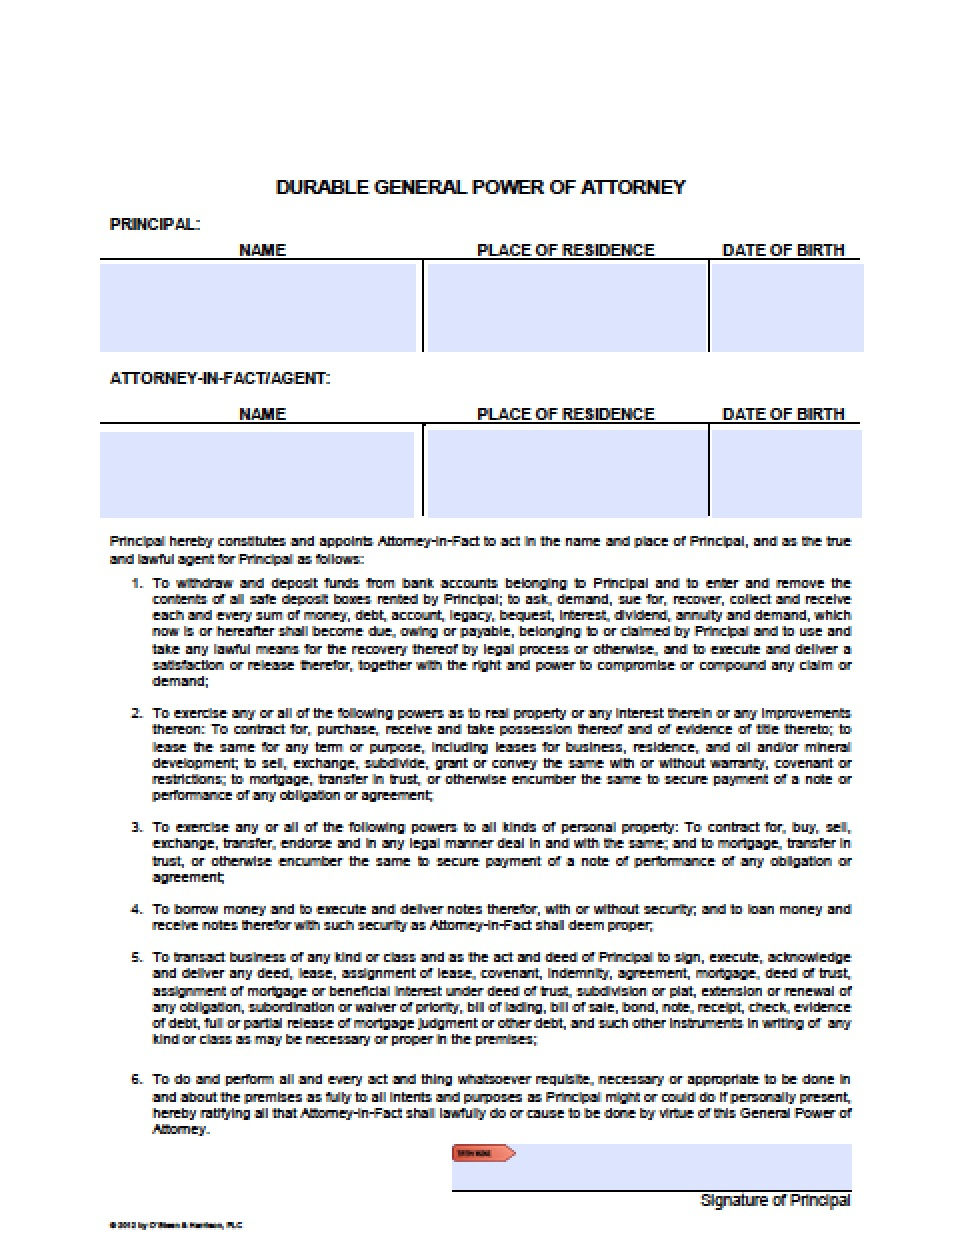 Free Arizona Power Of Attorney Forms In Fillable Pdf | 9 Types - Free Printable Power Of Attorney Form Washington State